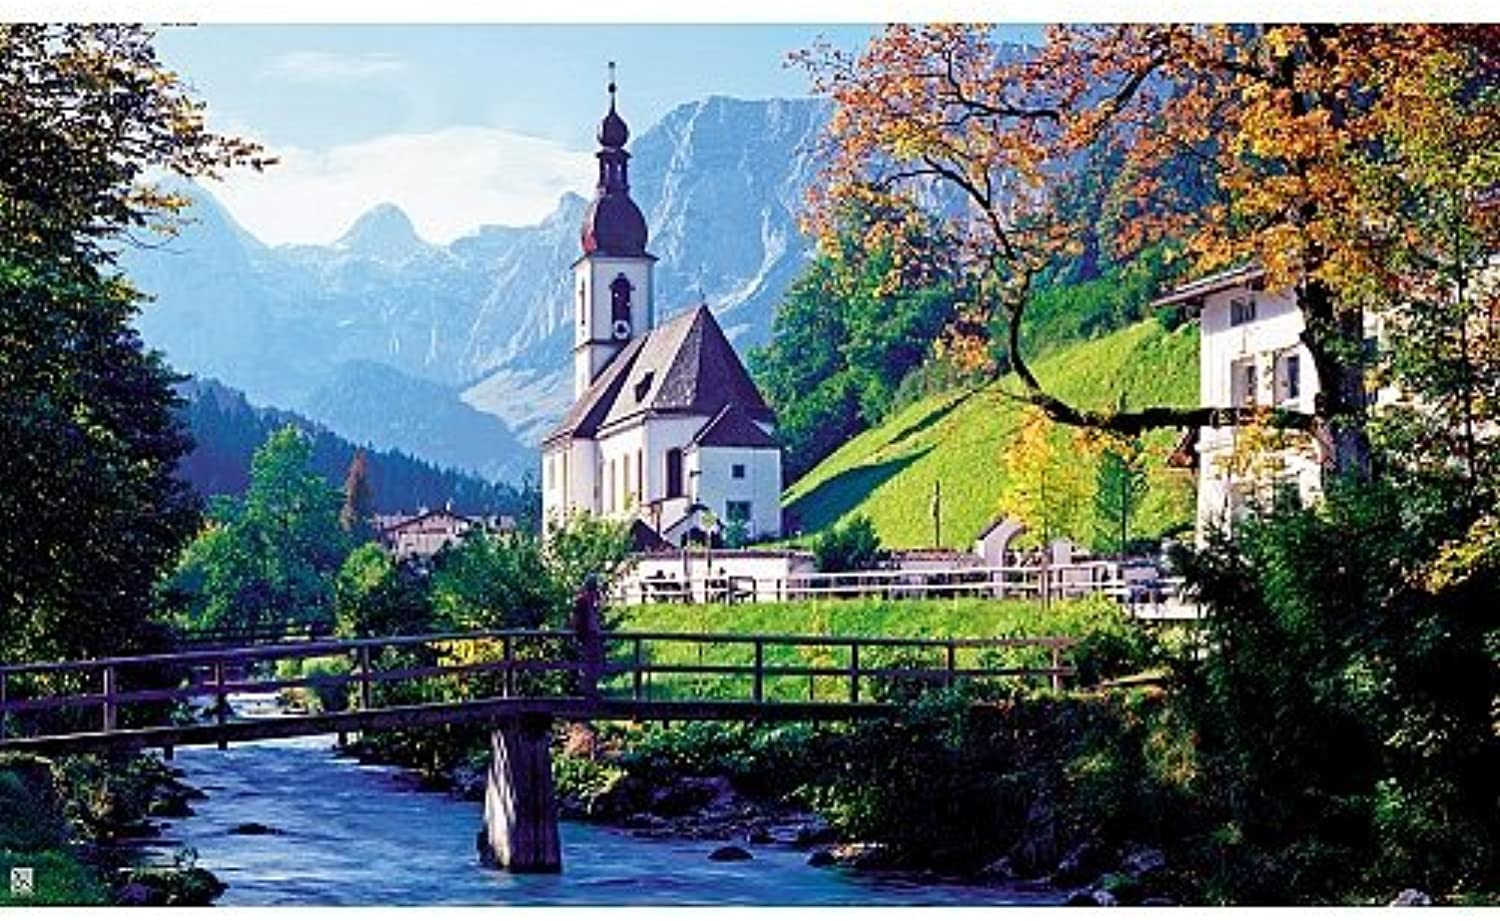 diseños exclusivos Regal 1500pc Ramsau Ramsau Ramsau Church, Bavaria Puzzle  descuento online